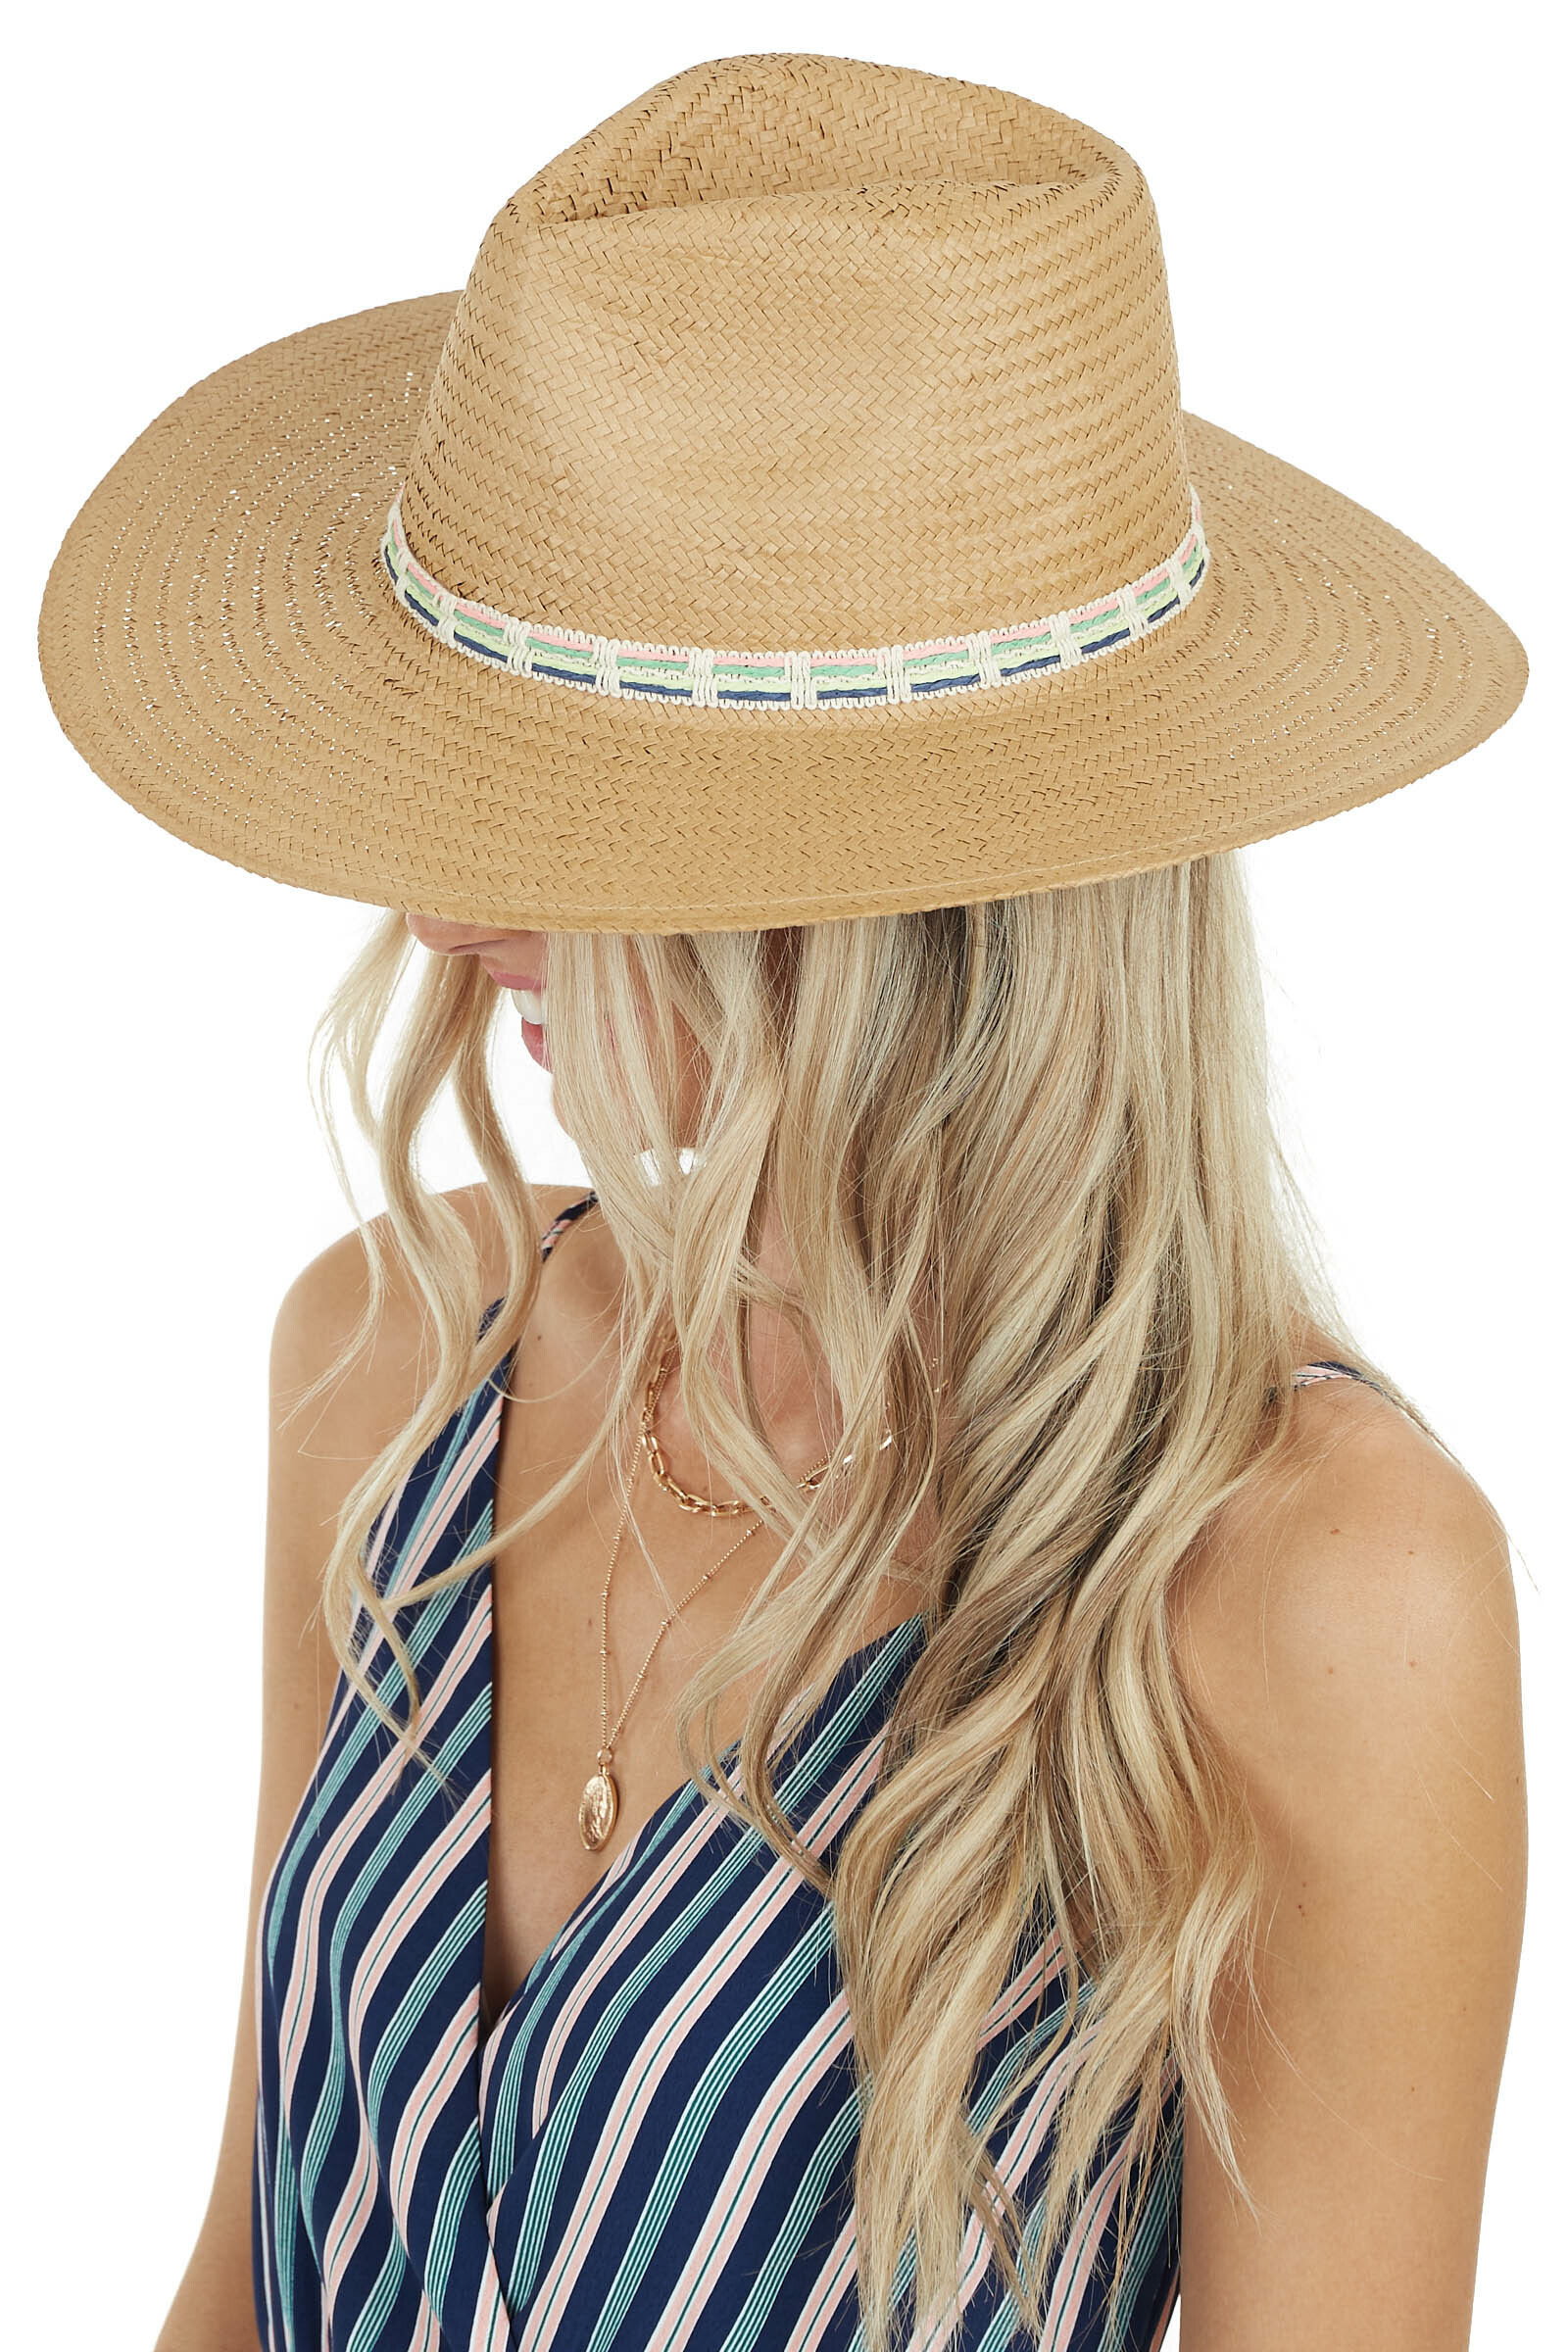 Tan Panama Straw Hat with Multicolor Thread Details